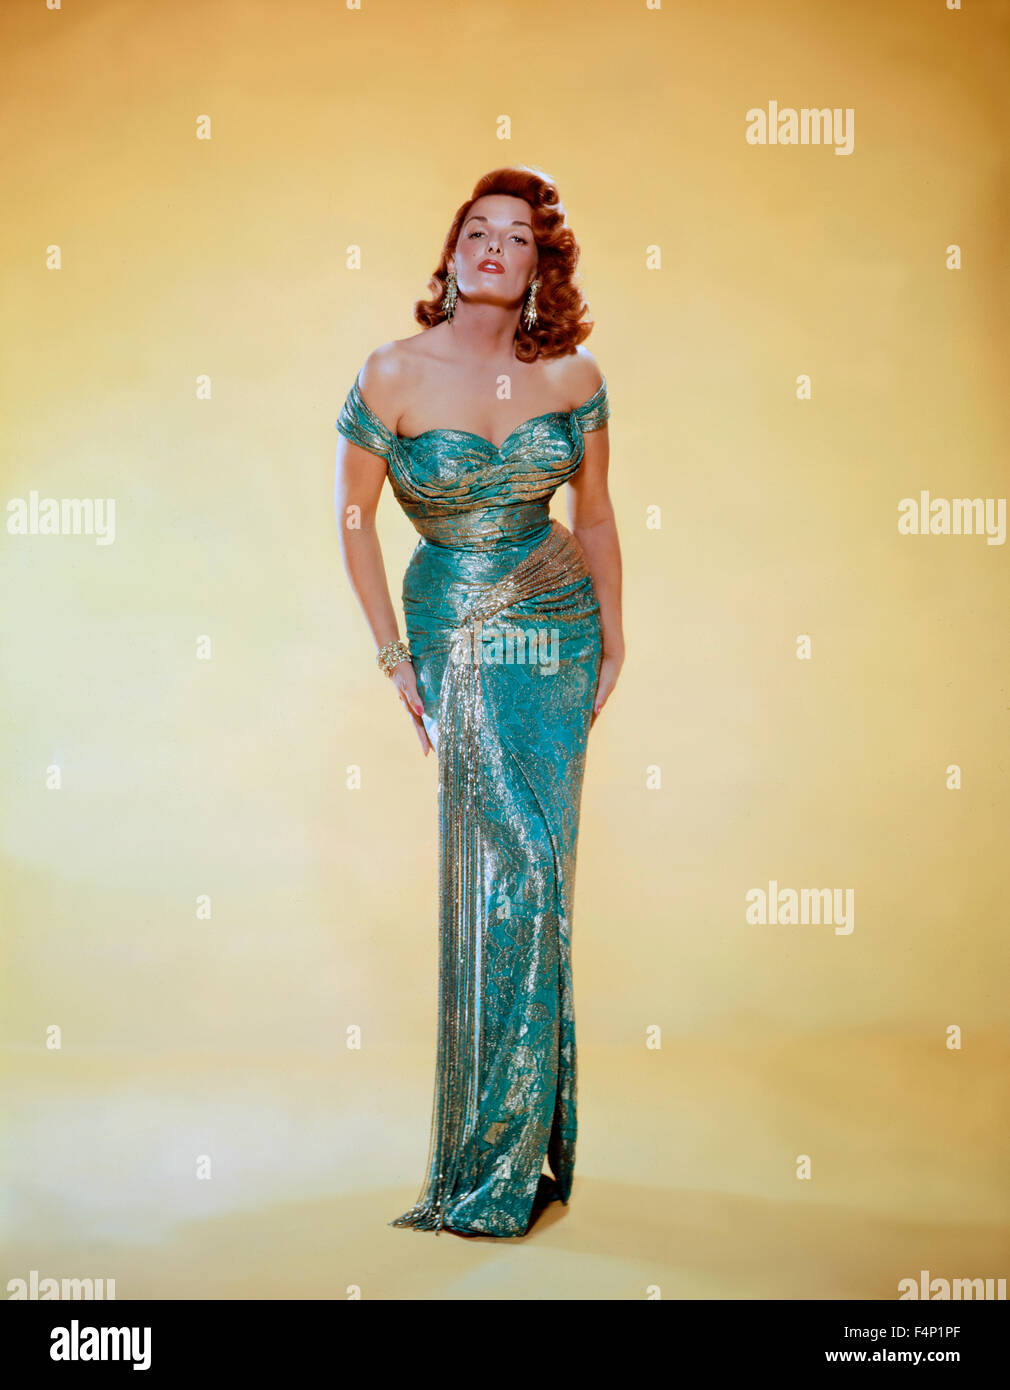 JANE RUSSELL 1956 - Stock Image